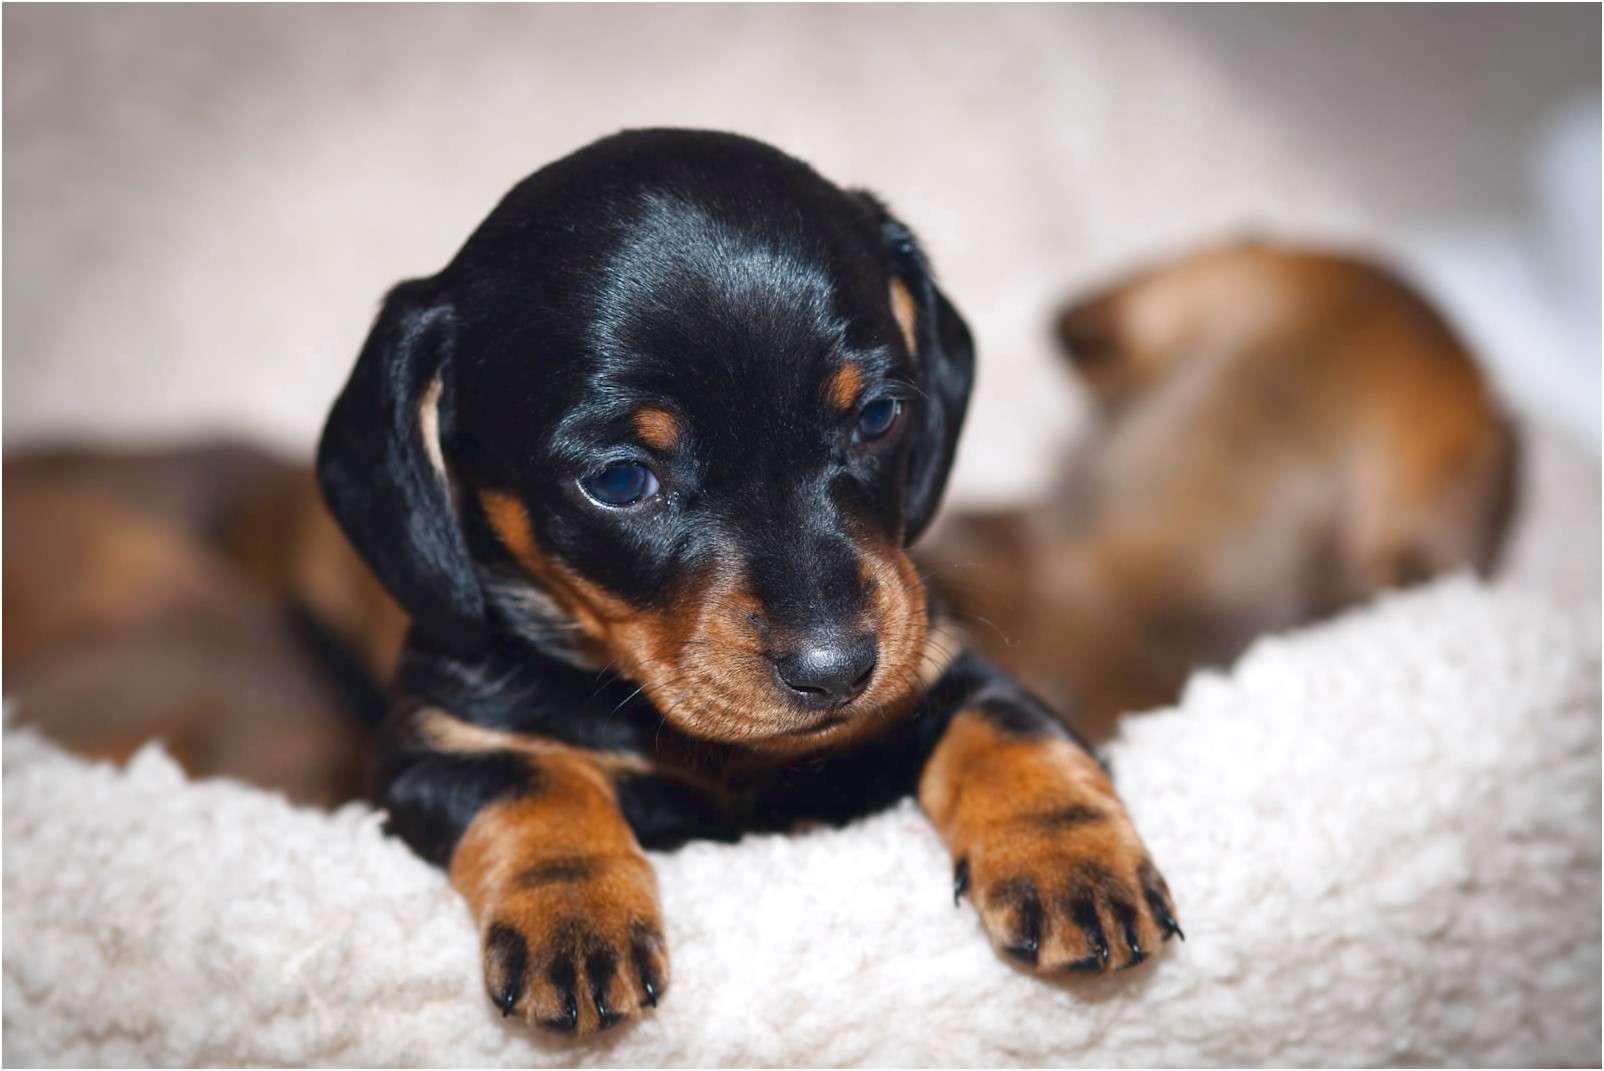 pictures of baby dachshund puppies